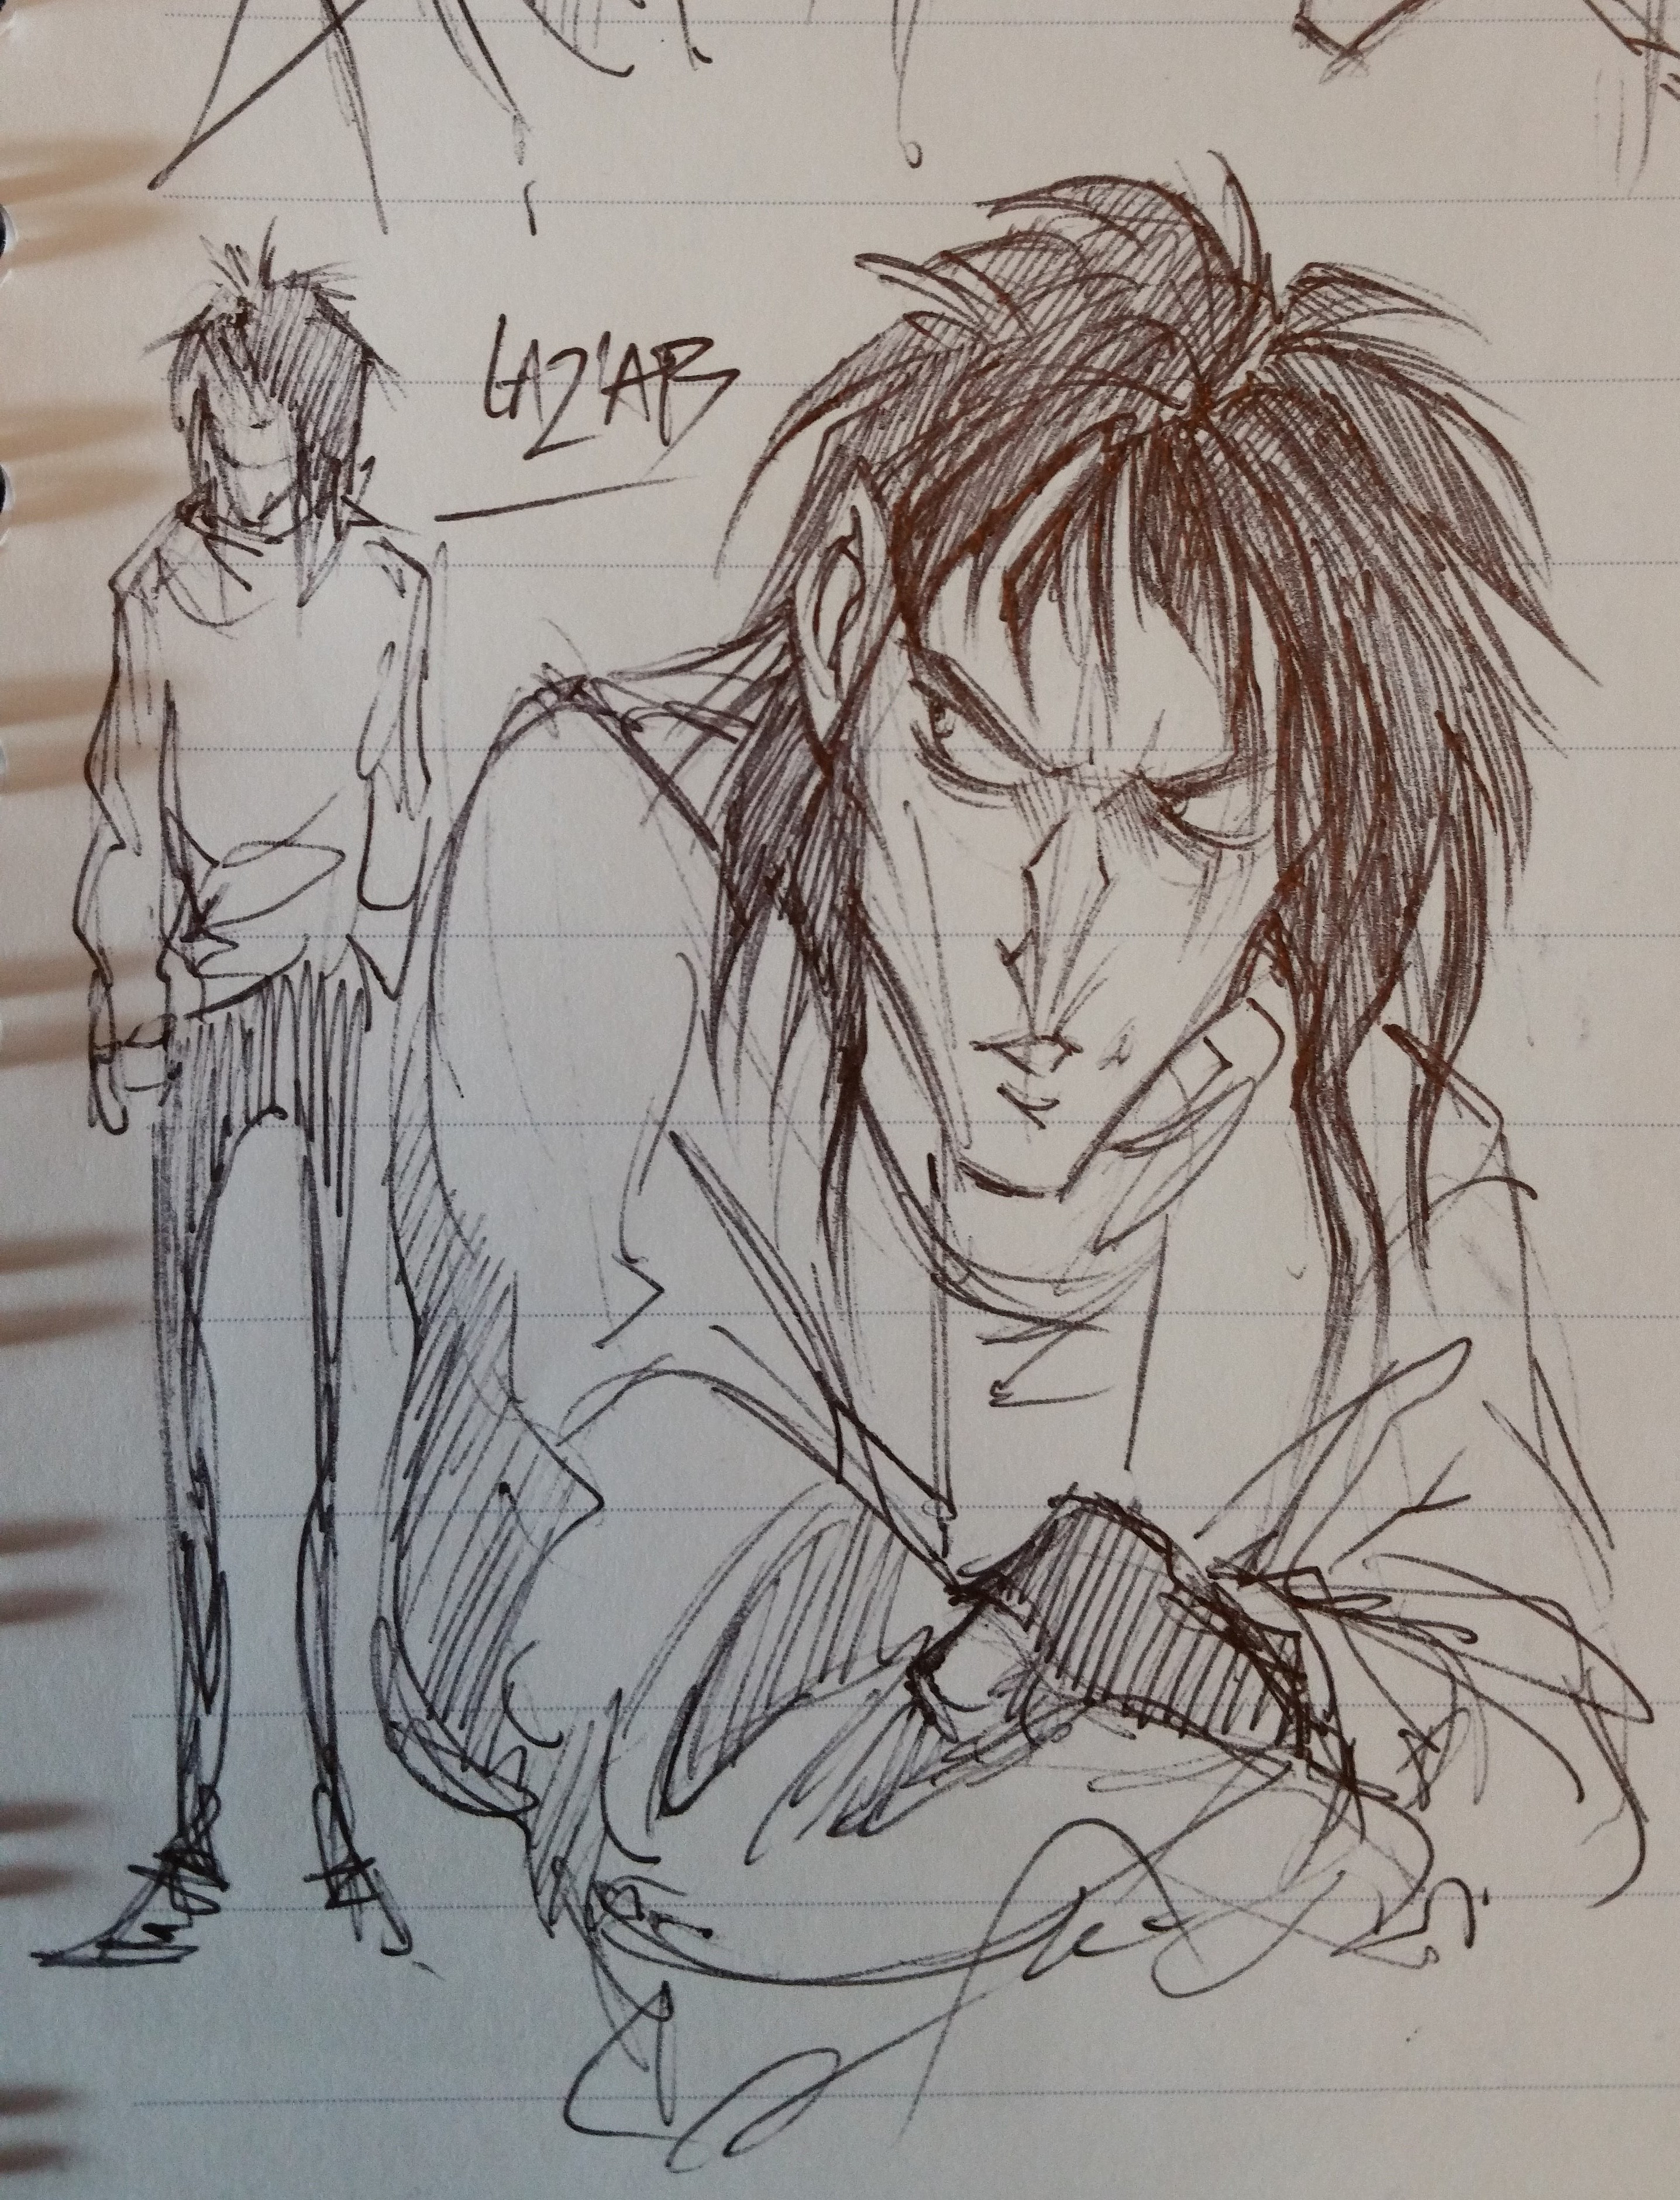 Original sketch of human!Laz'ab from 2018